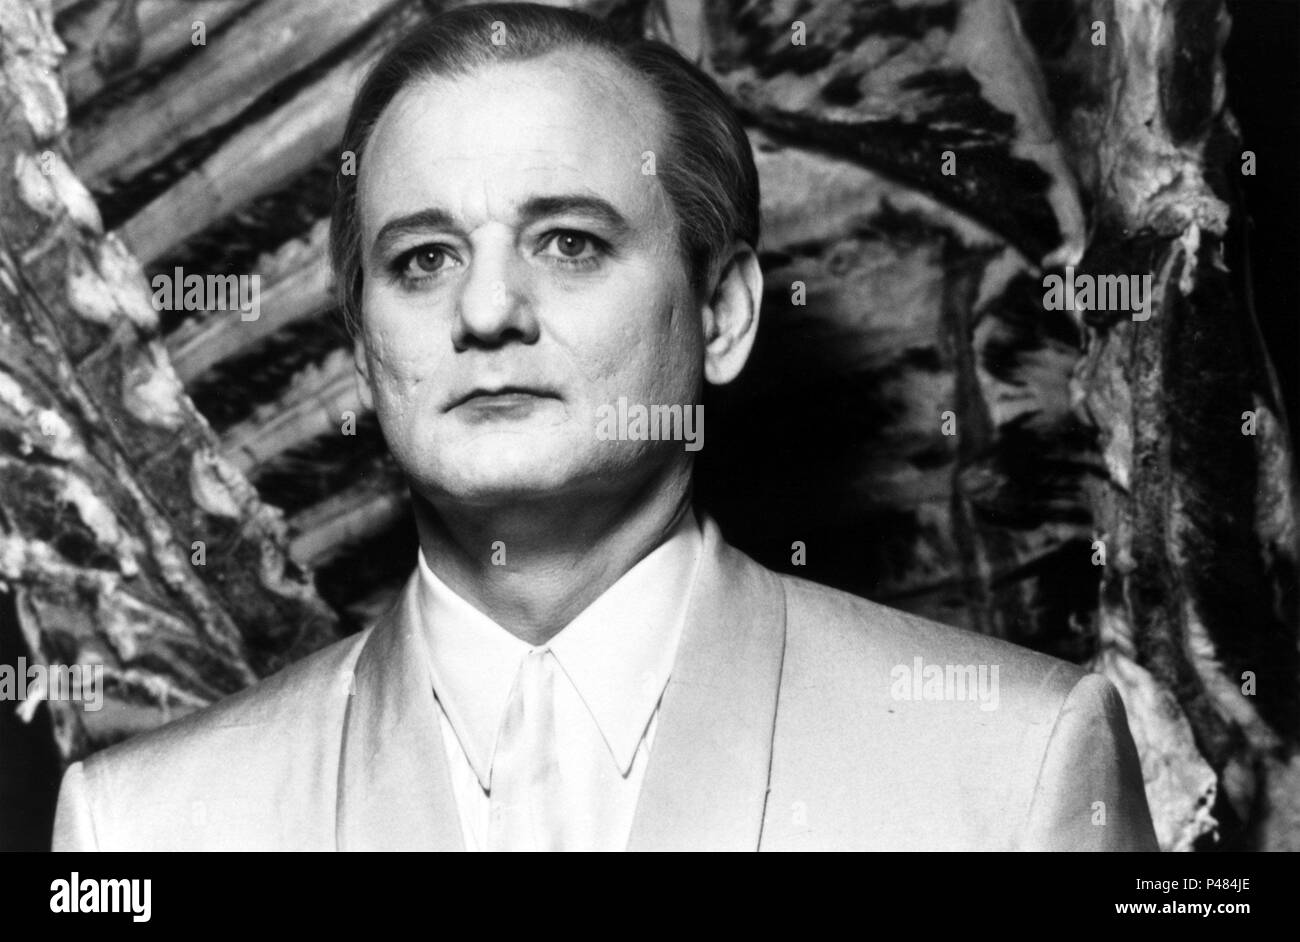 Original Film Title: ED WOOD.  English Title: ED WOOD.  Film Director: TIM BURTON.  Year: 1994.  Stars: BILL MURRAY. Credit: TOUCHSTONE PICTURES / Album - Stock Image